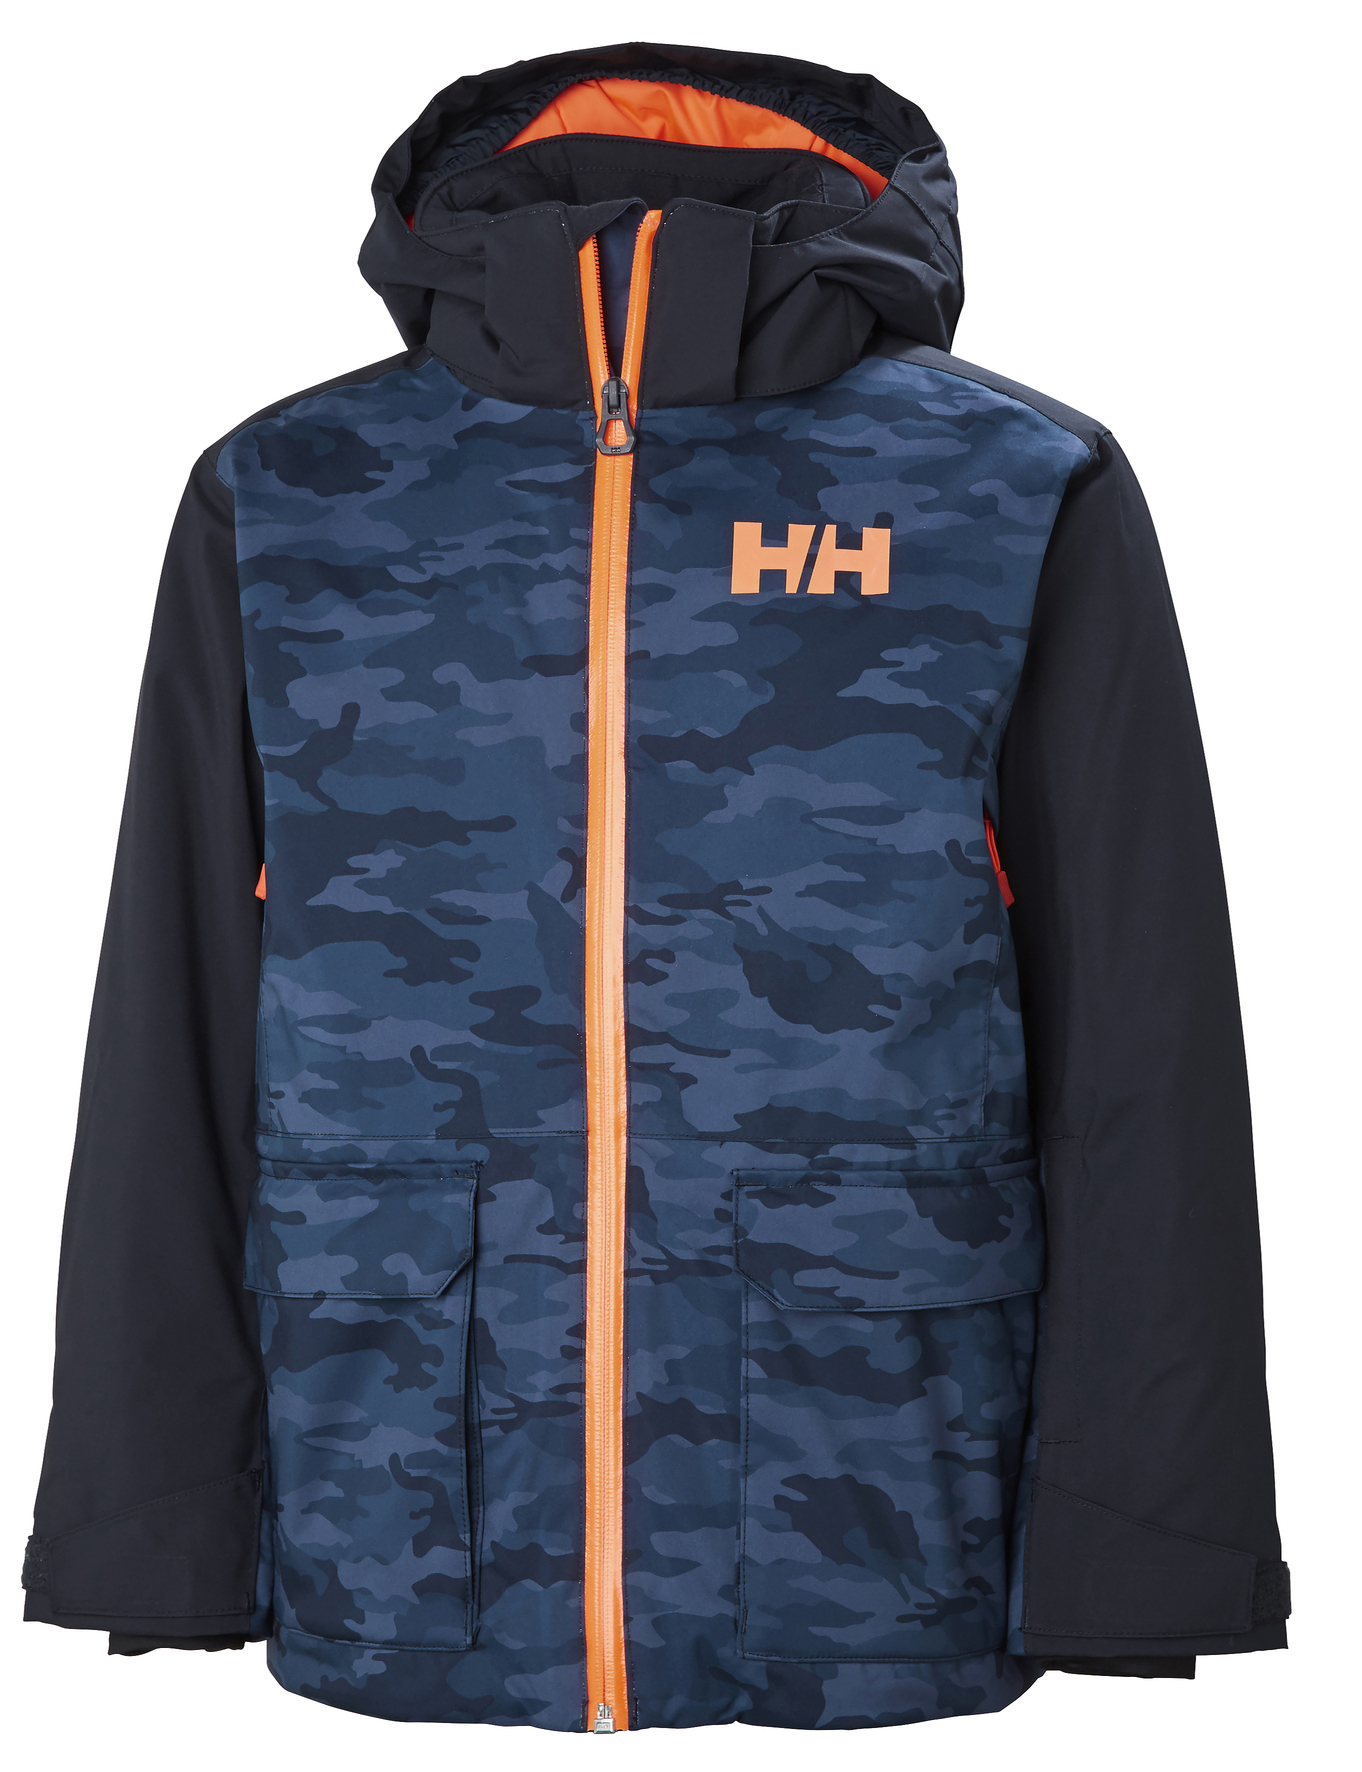 Habits de neige HELLY HANSEN